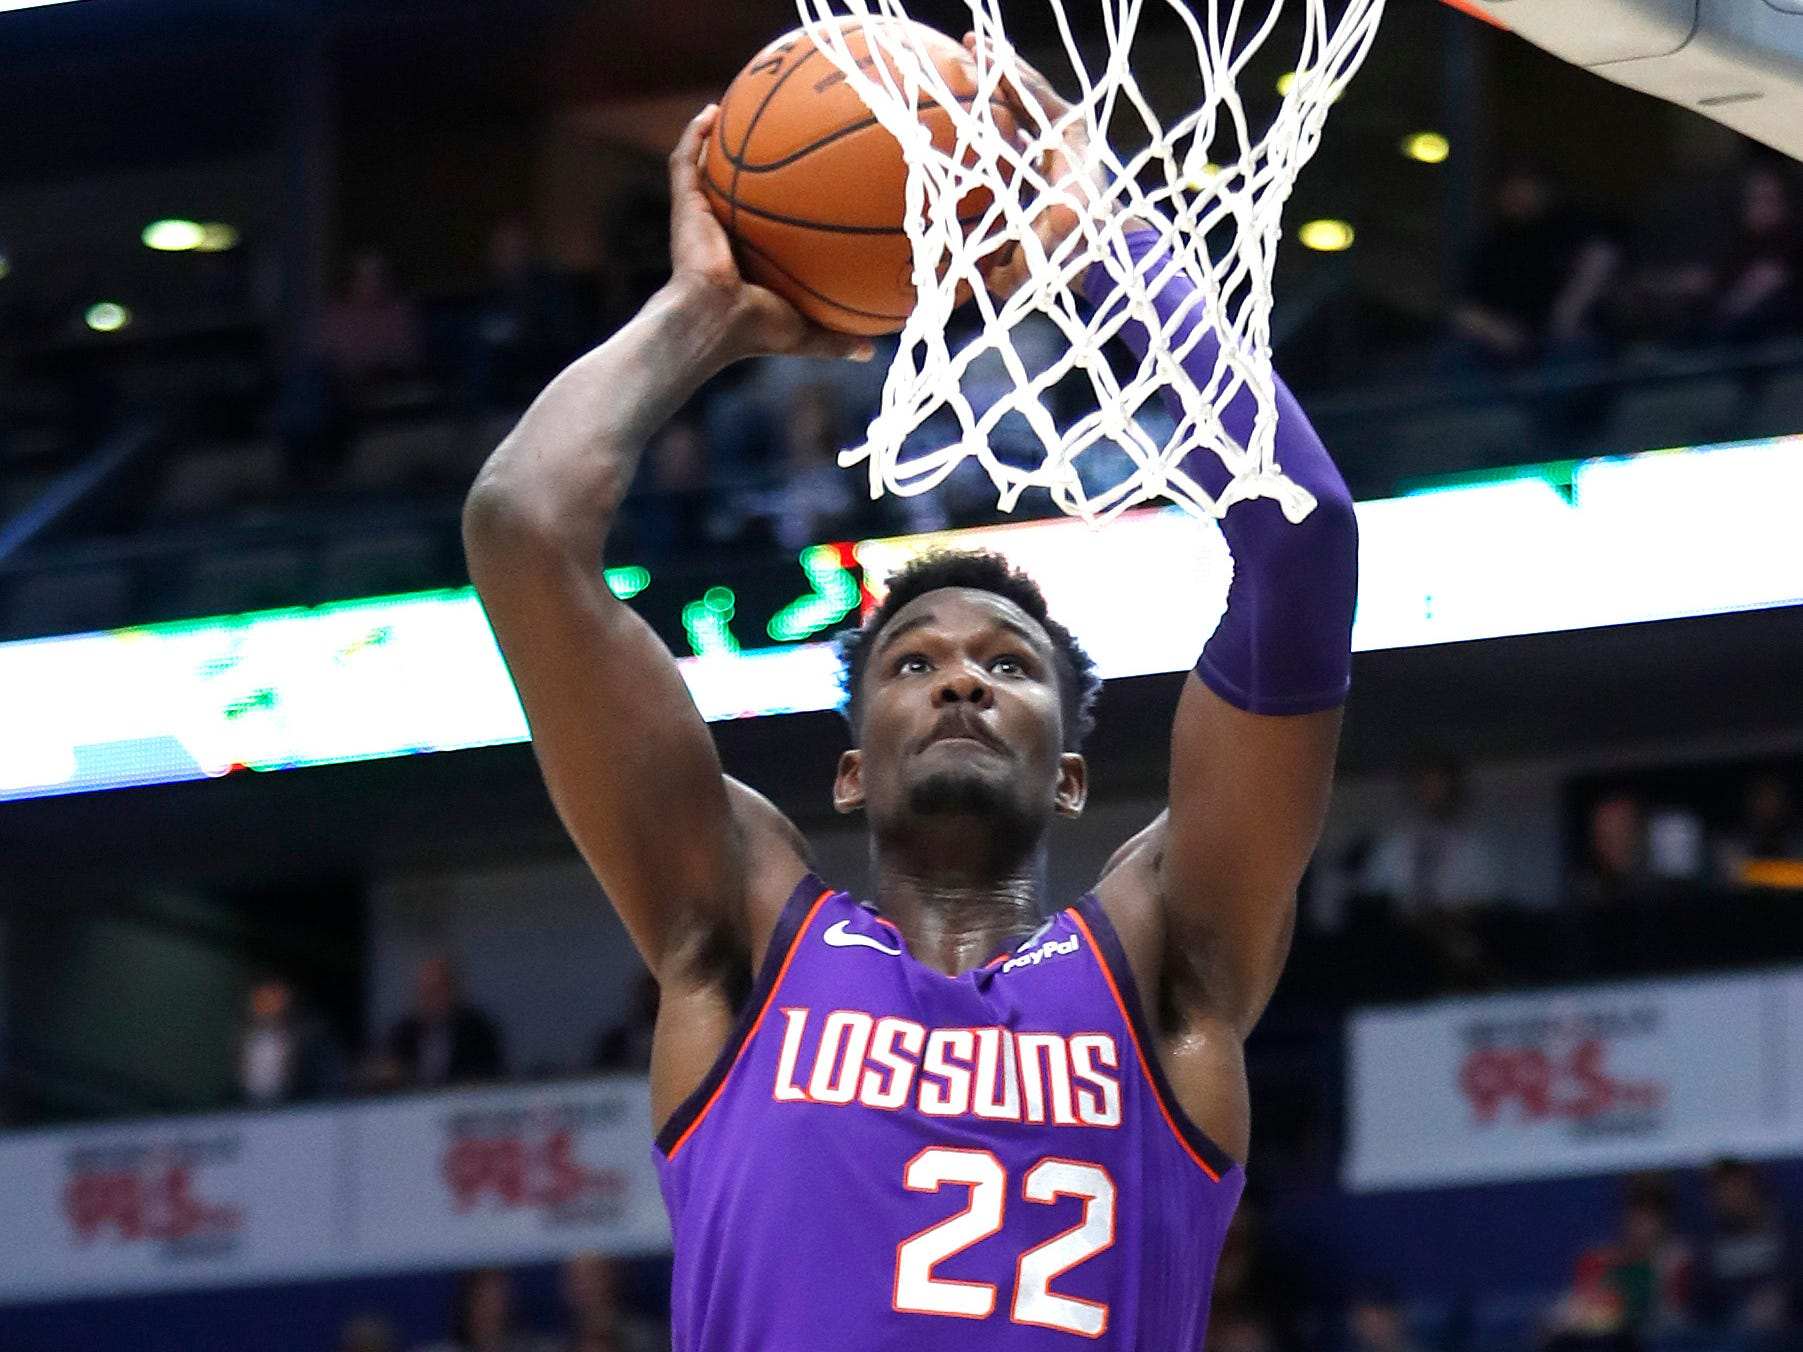 Phoenix Suns center Deandre Ayton (22) dunks the ball during the first half of an NBA basketball game against the New Orleans Pelicans in New Orleans, Saturday, March 16, 2019.